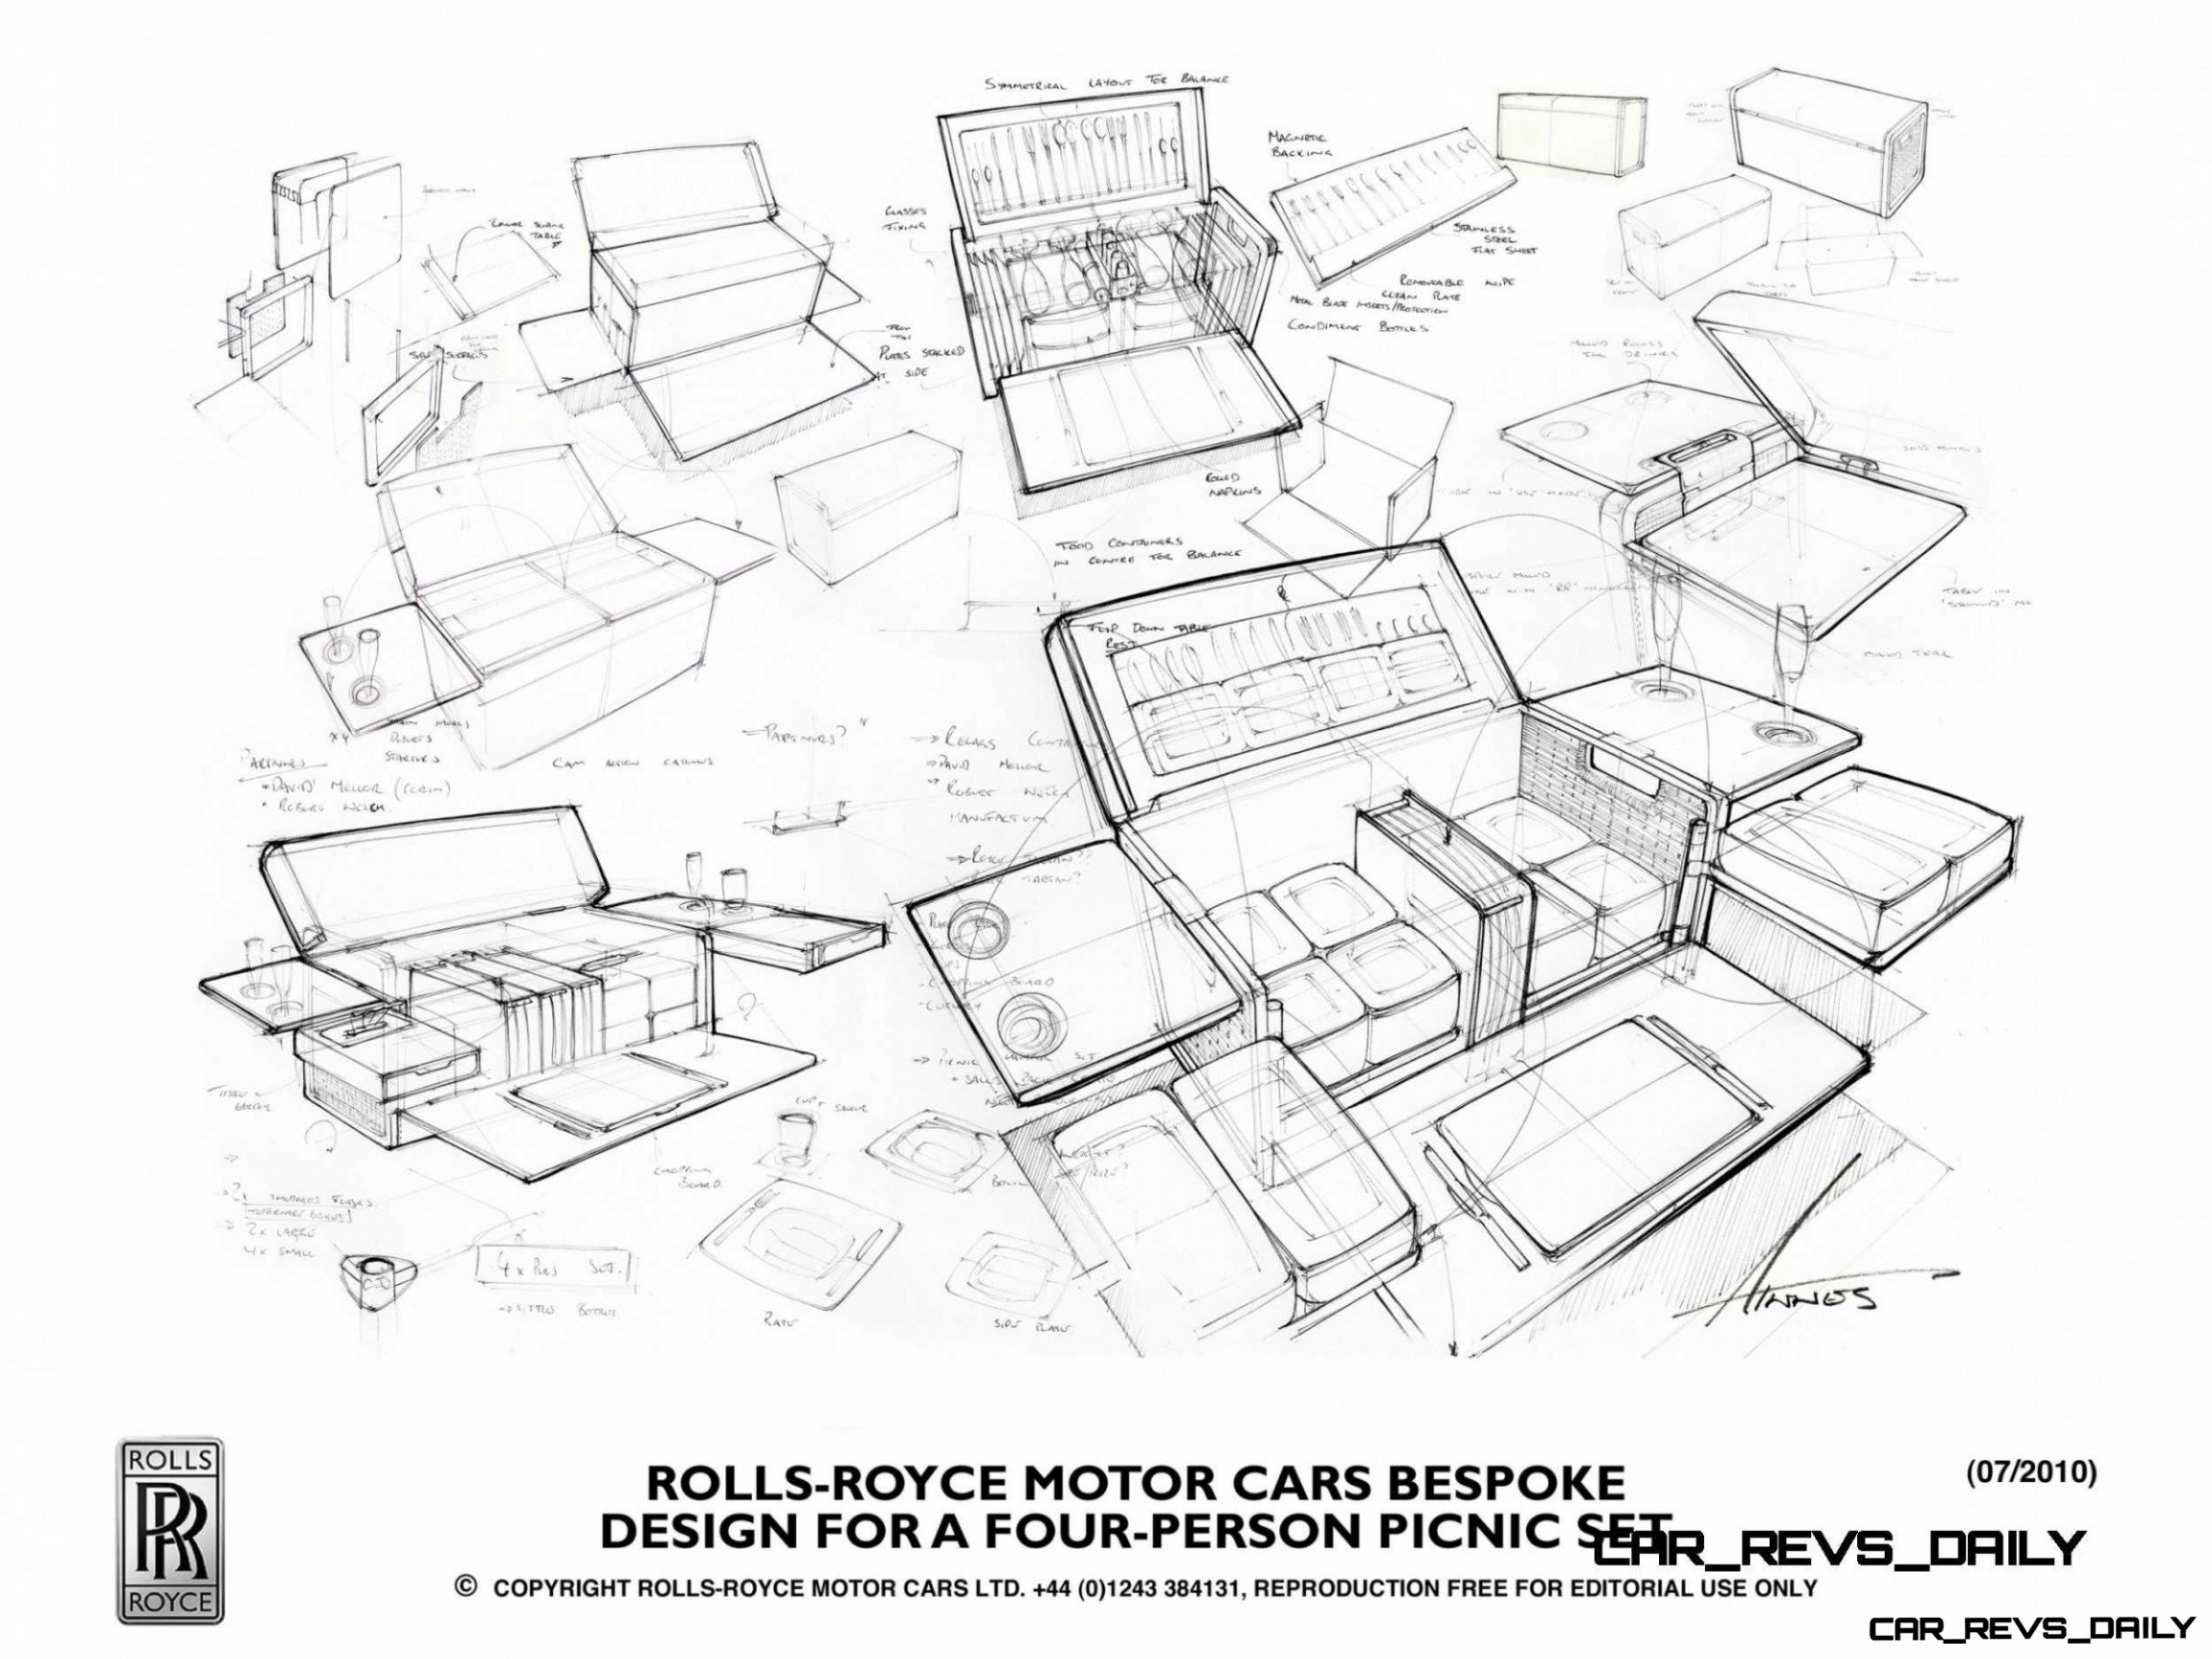 Rolls-Royce Motor Cars Production and Bespoke Design